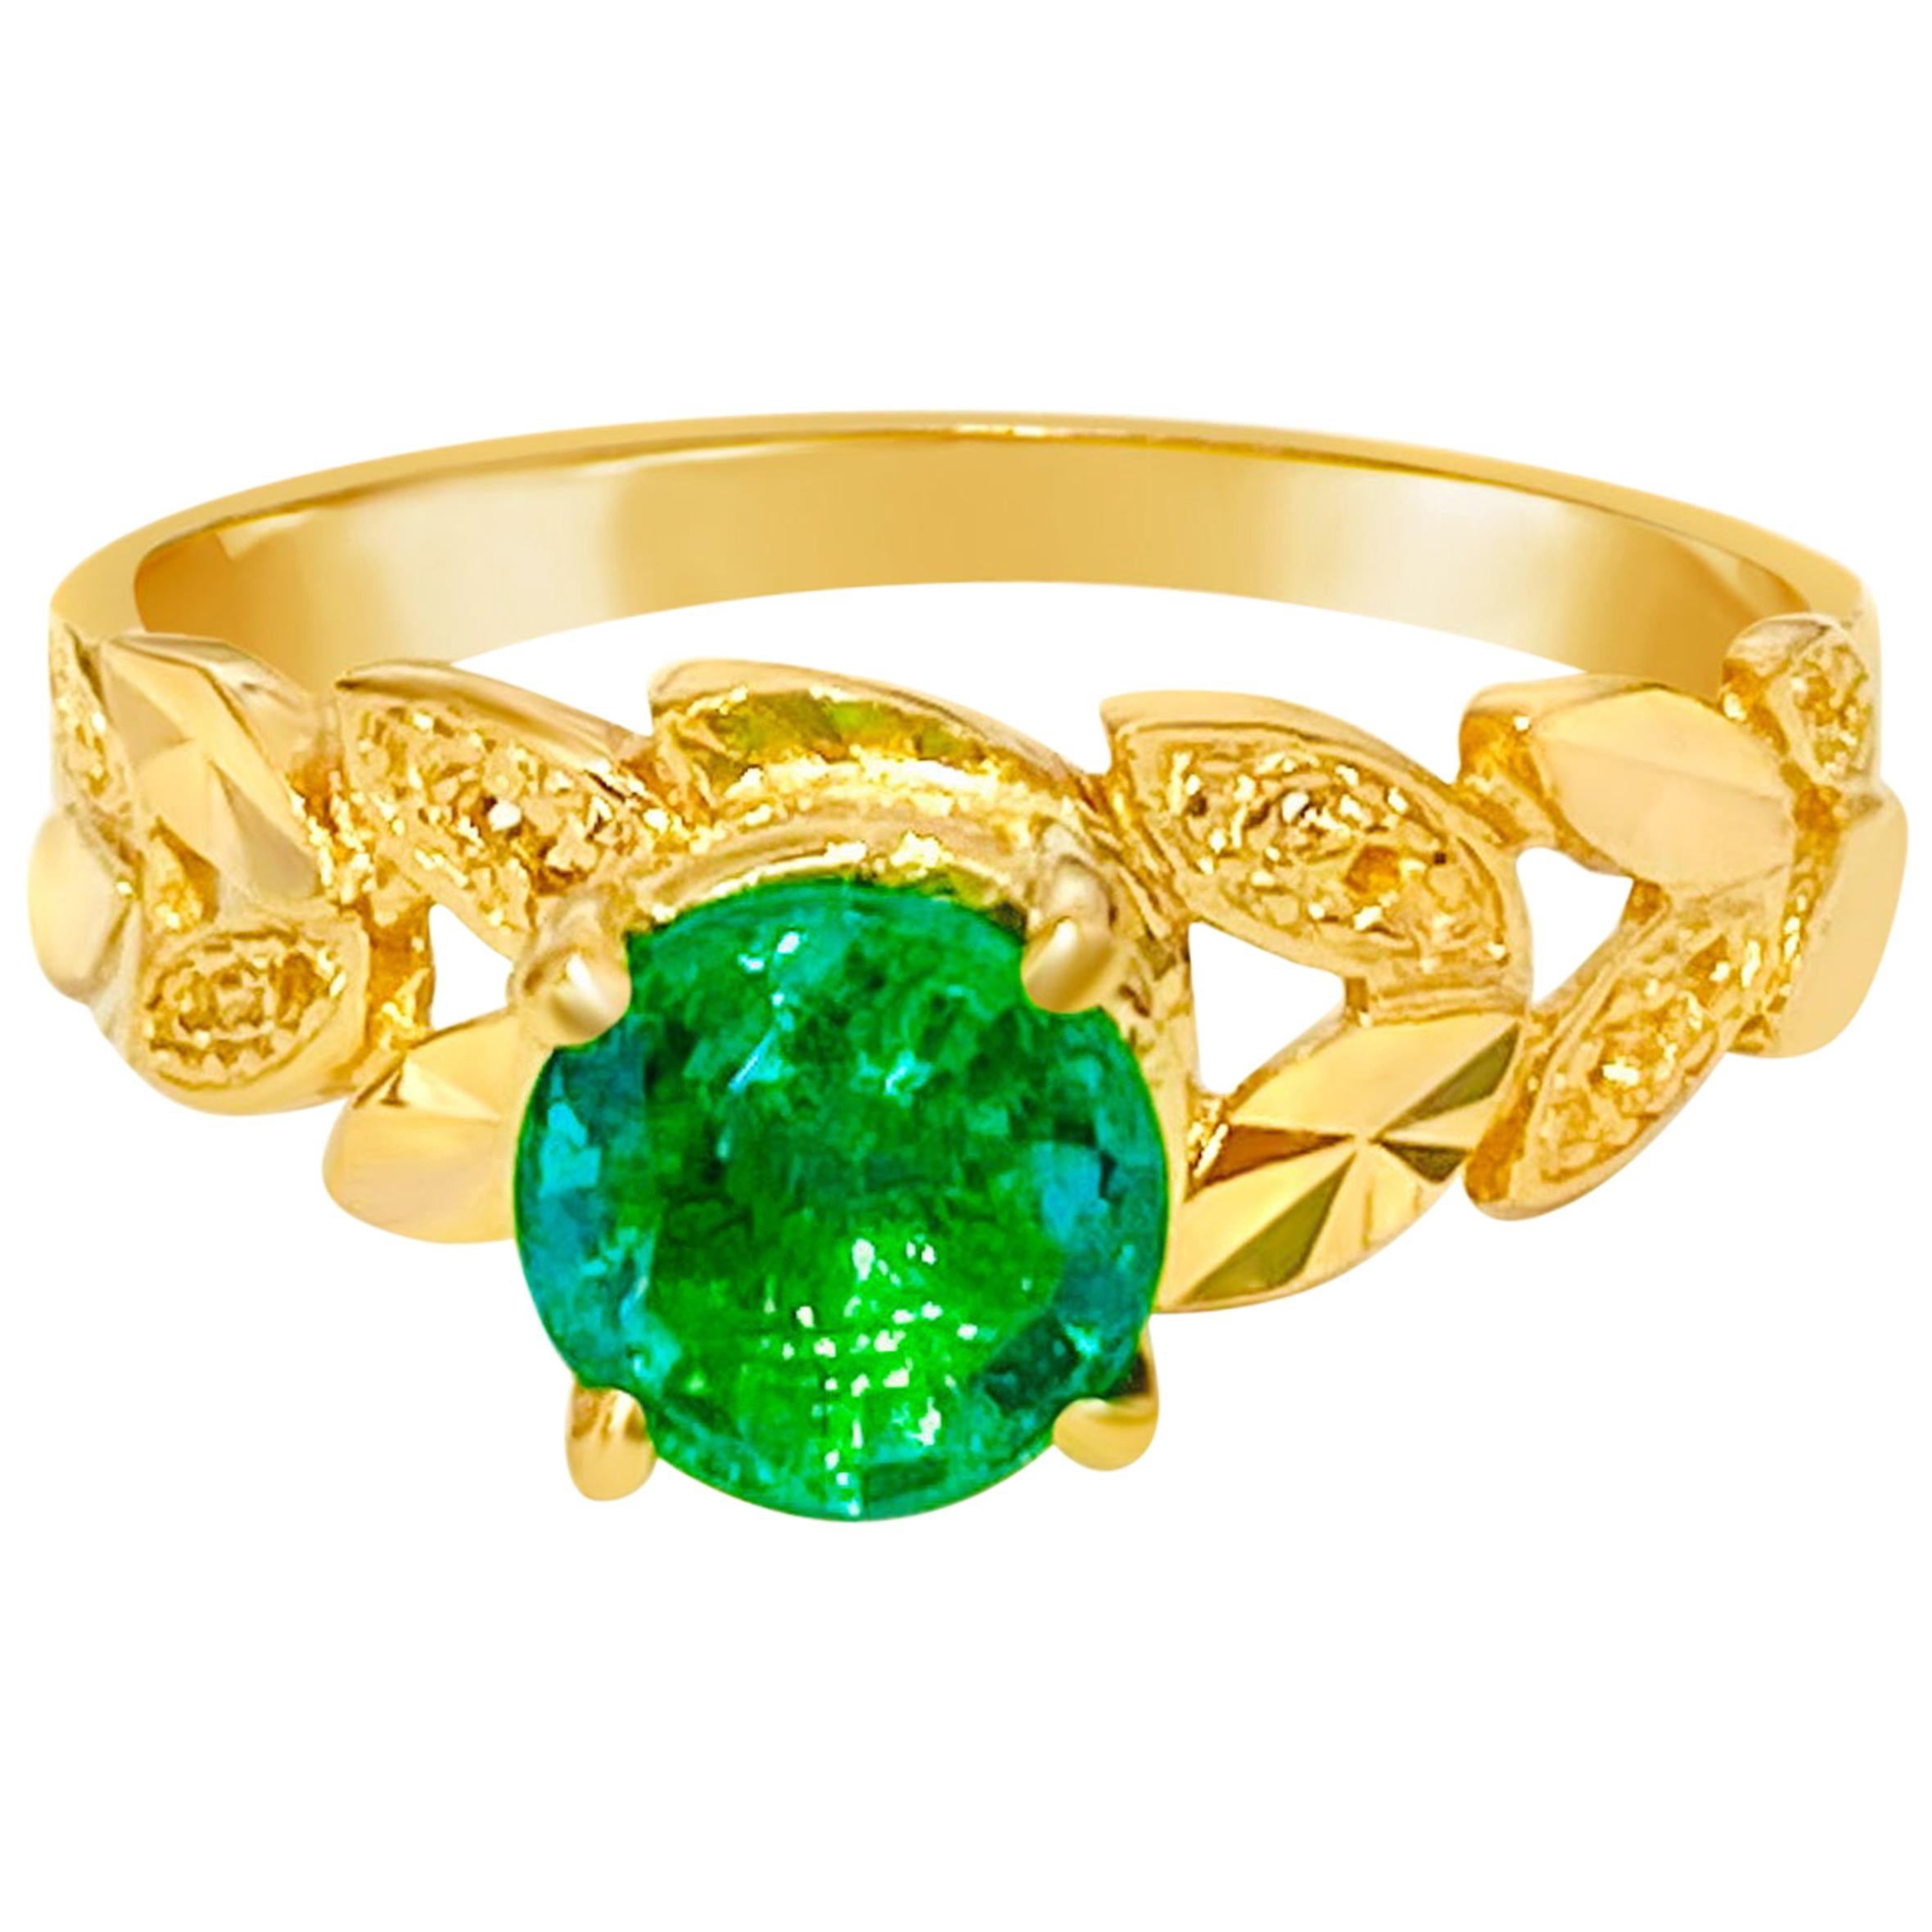 GIA Certified 1.20 Carat Solitaire Emerald Engagement Ring in Yellow Gold